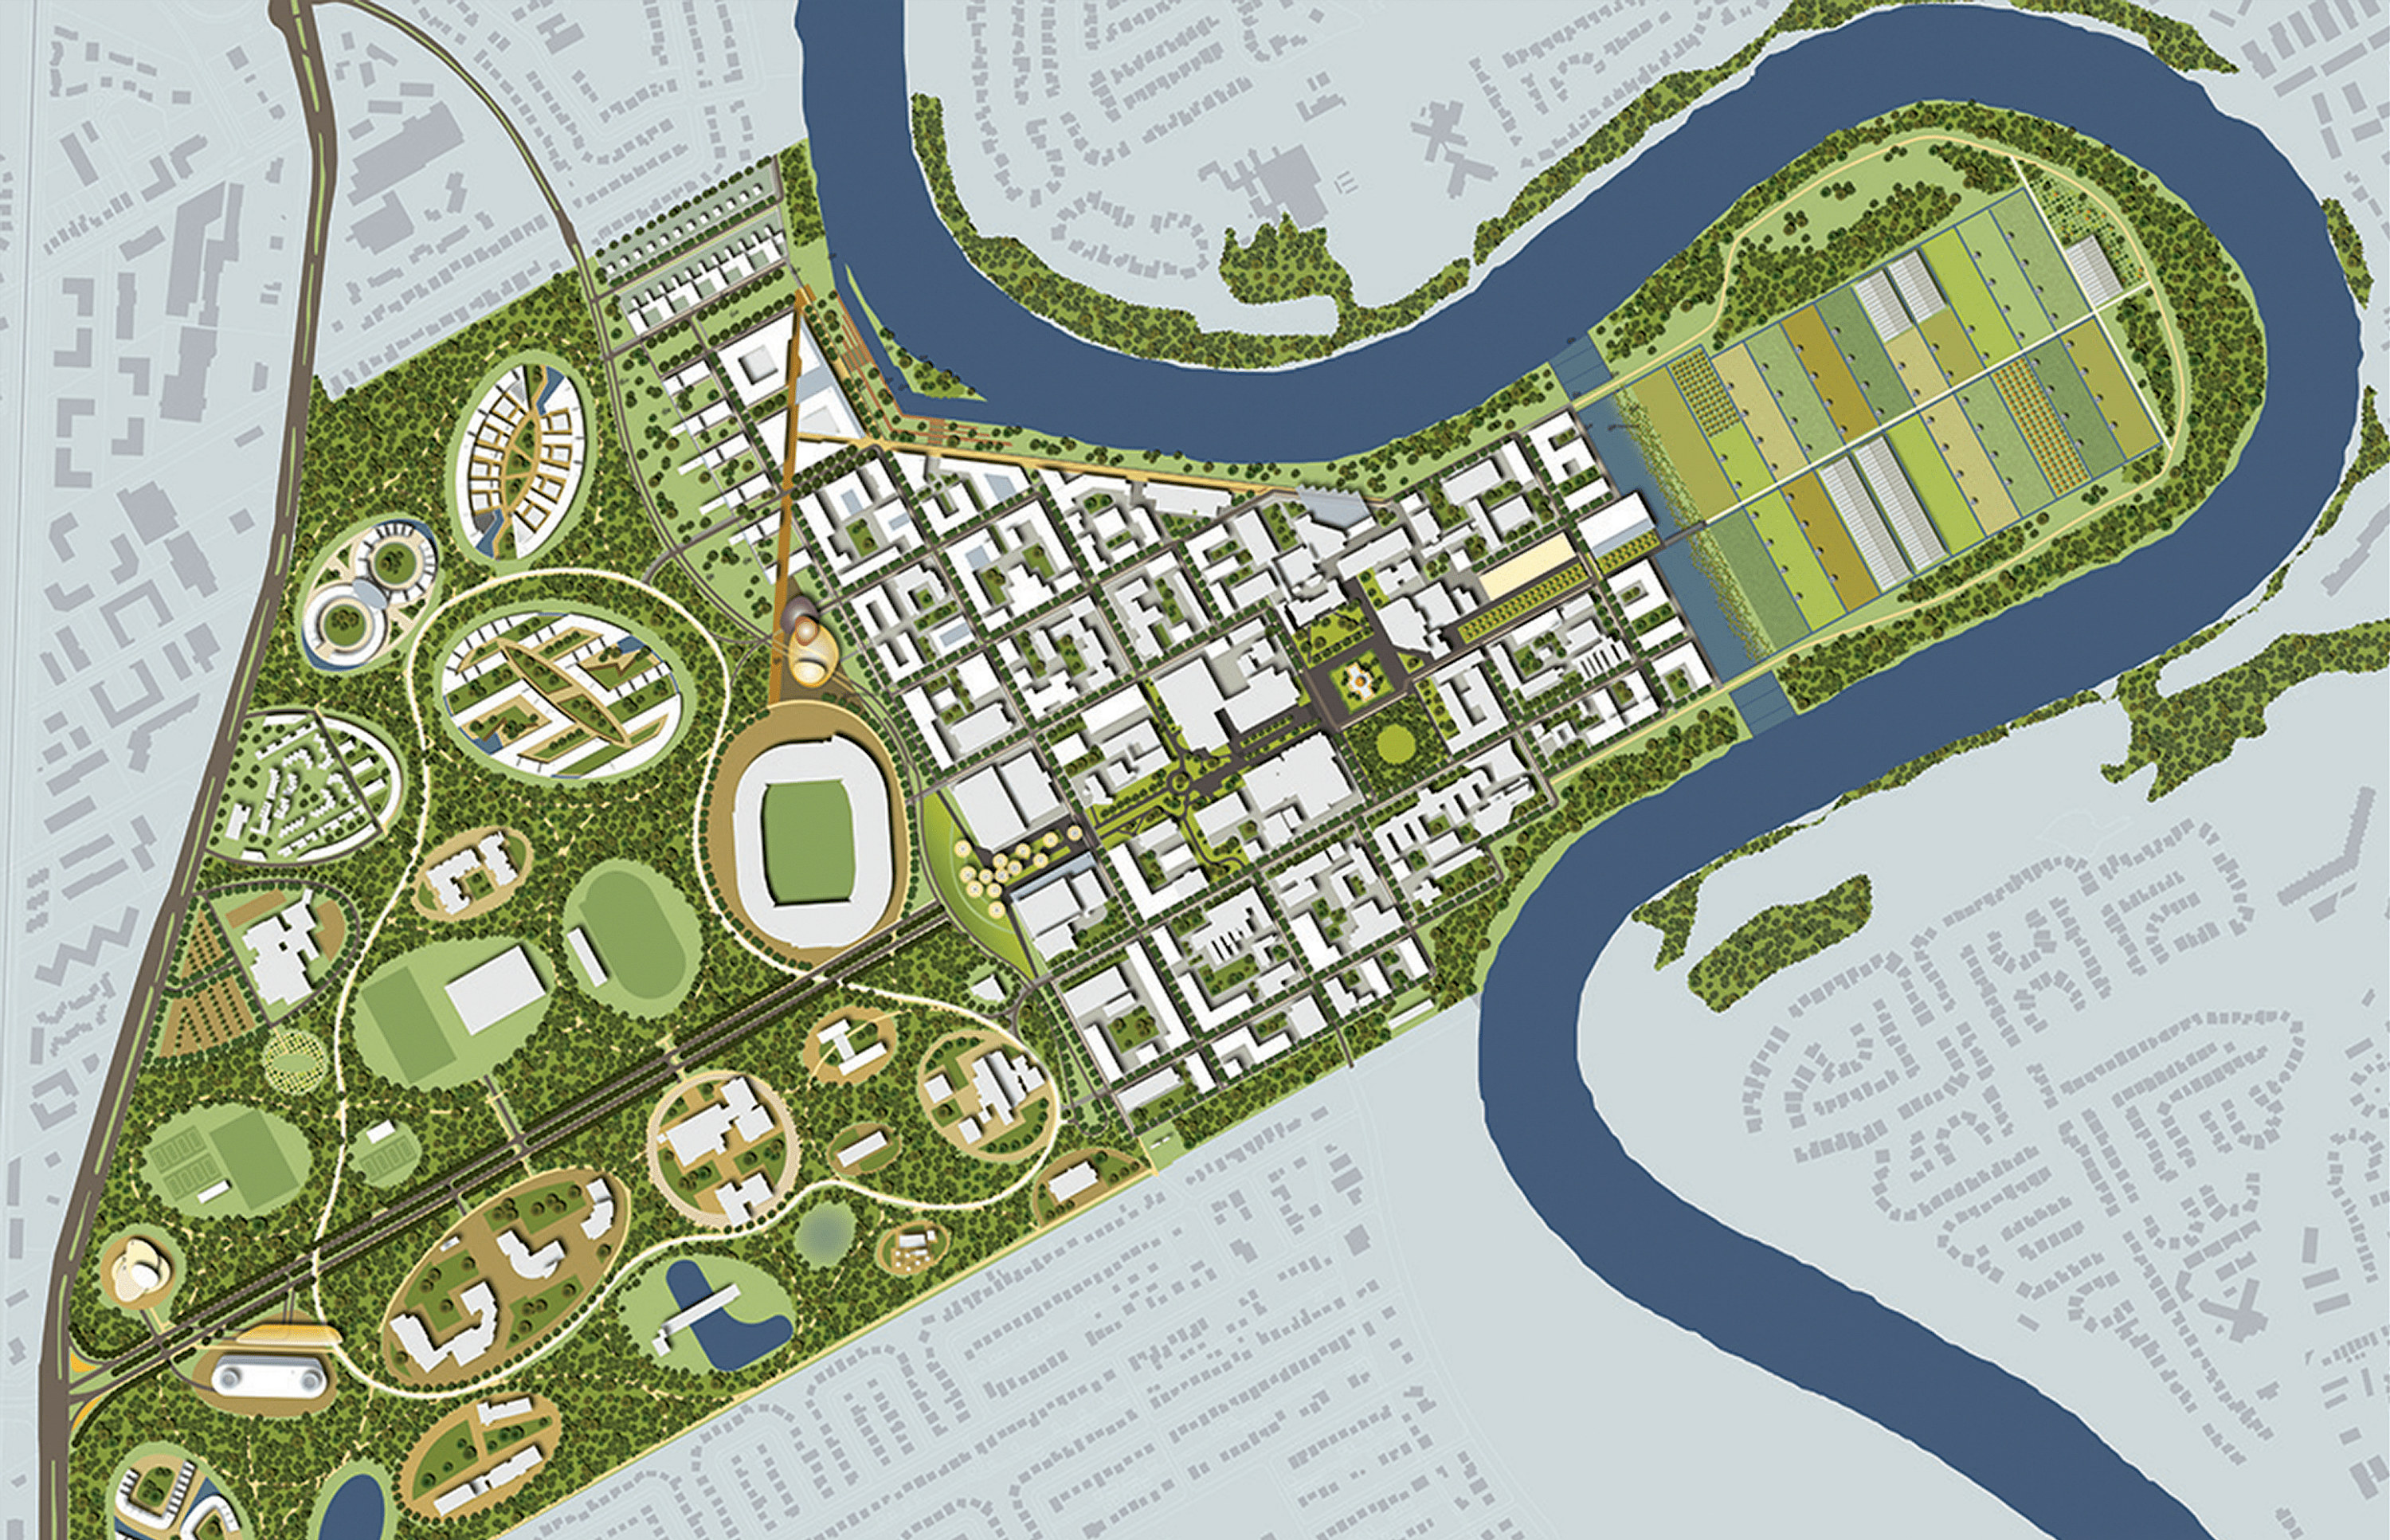 /site/assets/files/1262/od205_masterplan_plankaart_campus_winnipeg.png